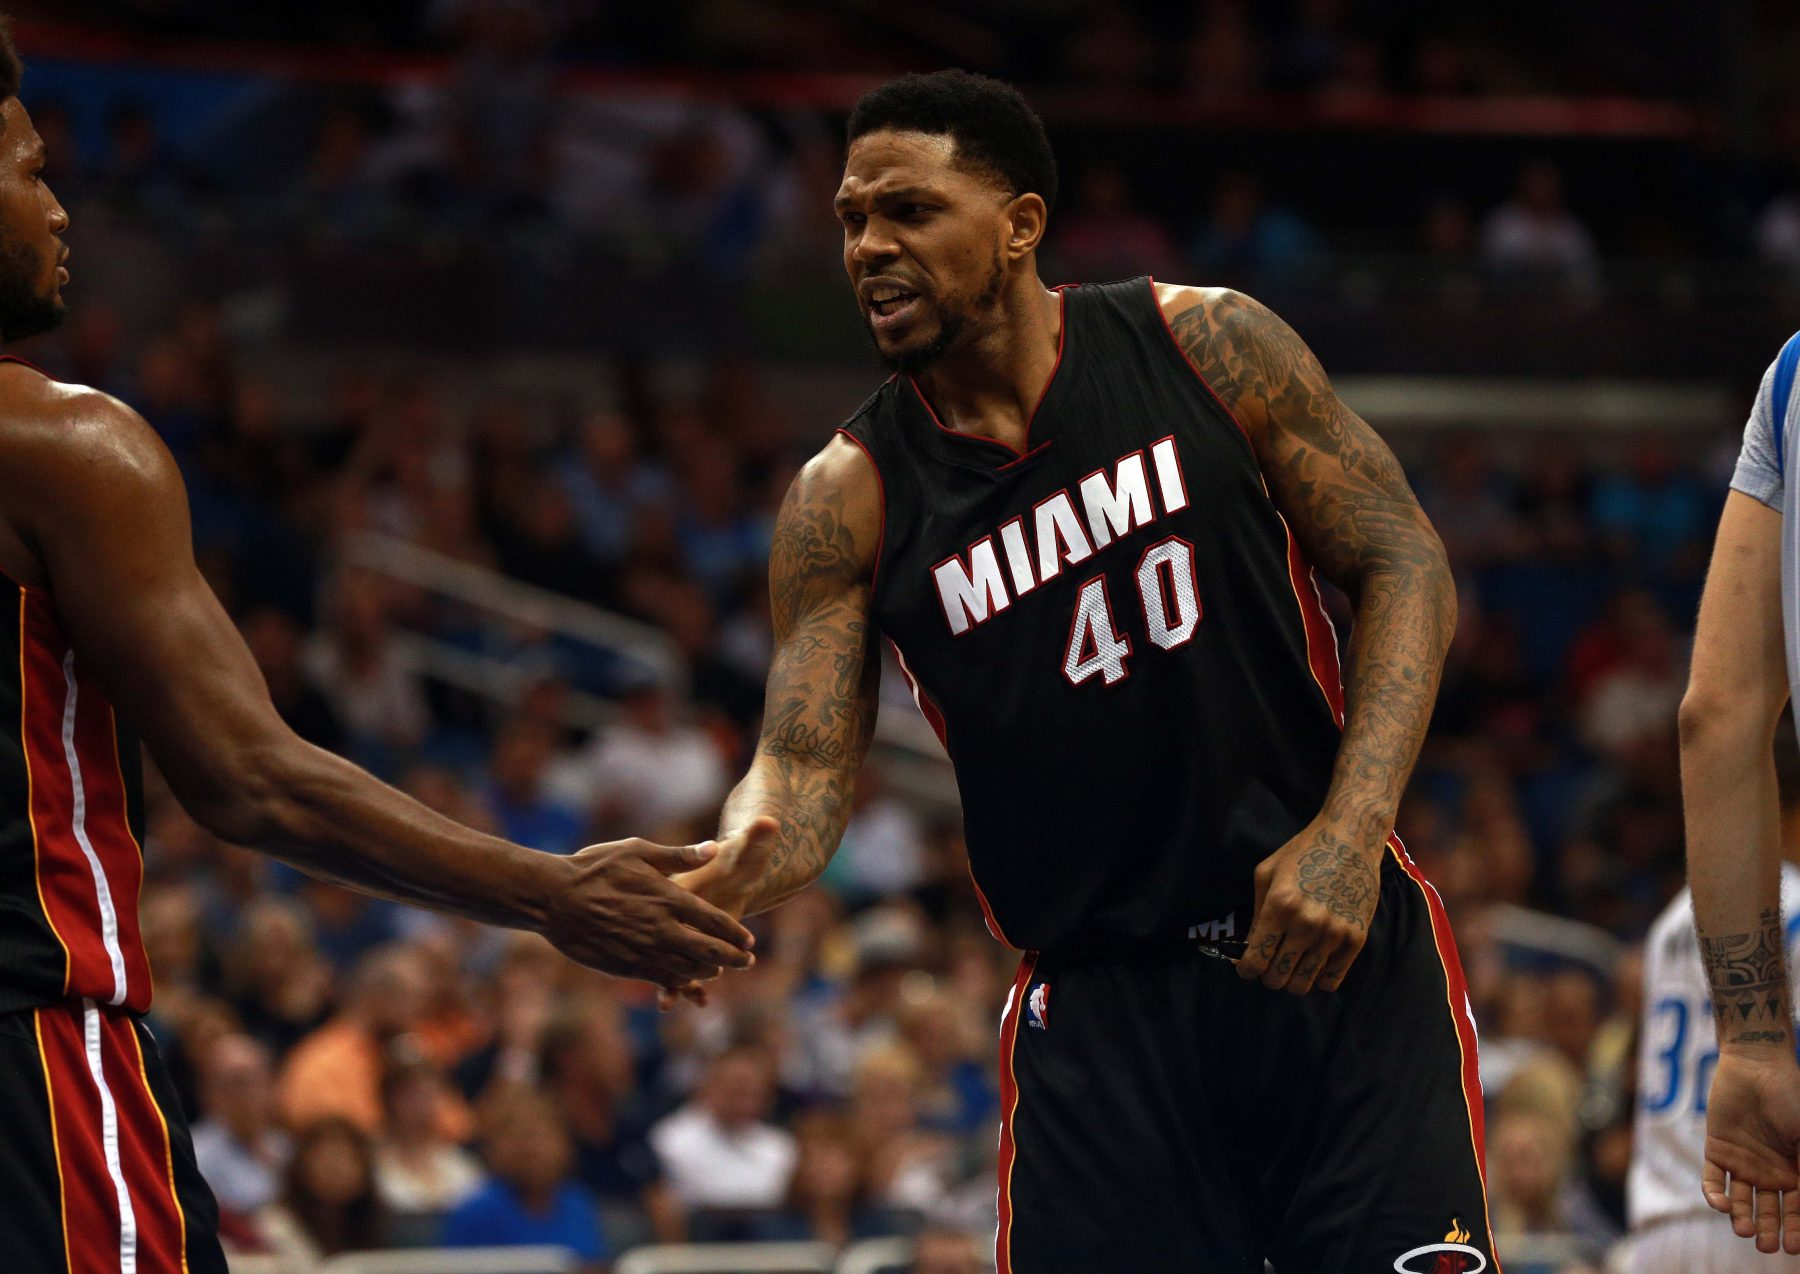 Udonis Haslem Says 2019-20 Will Be Final Season If Teammates Send Him Off the 'Right Way'